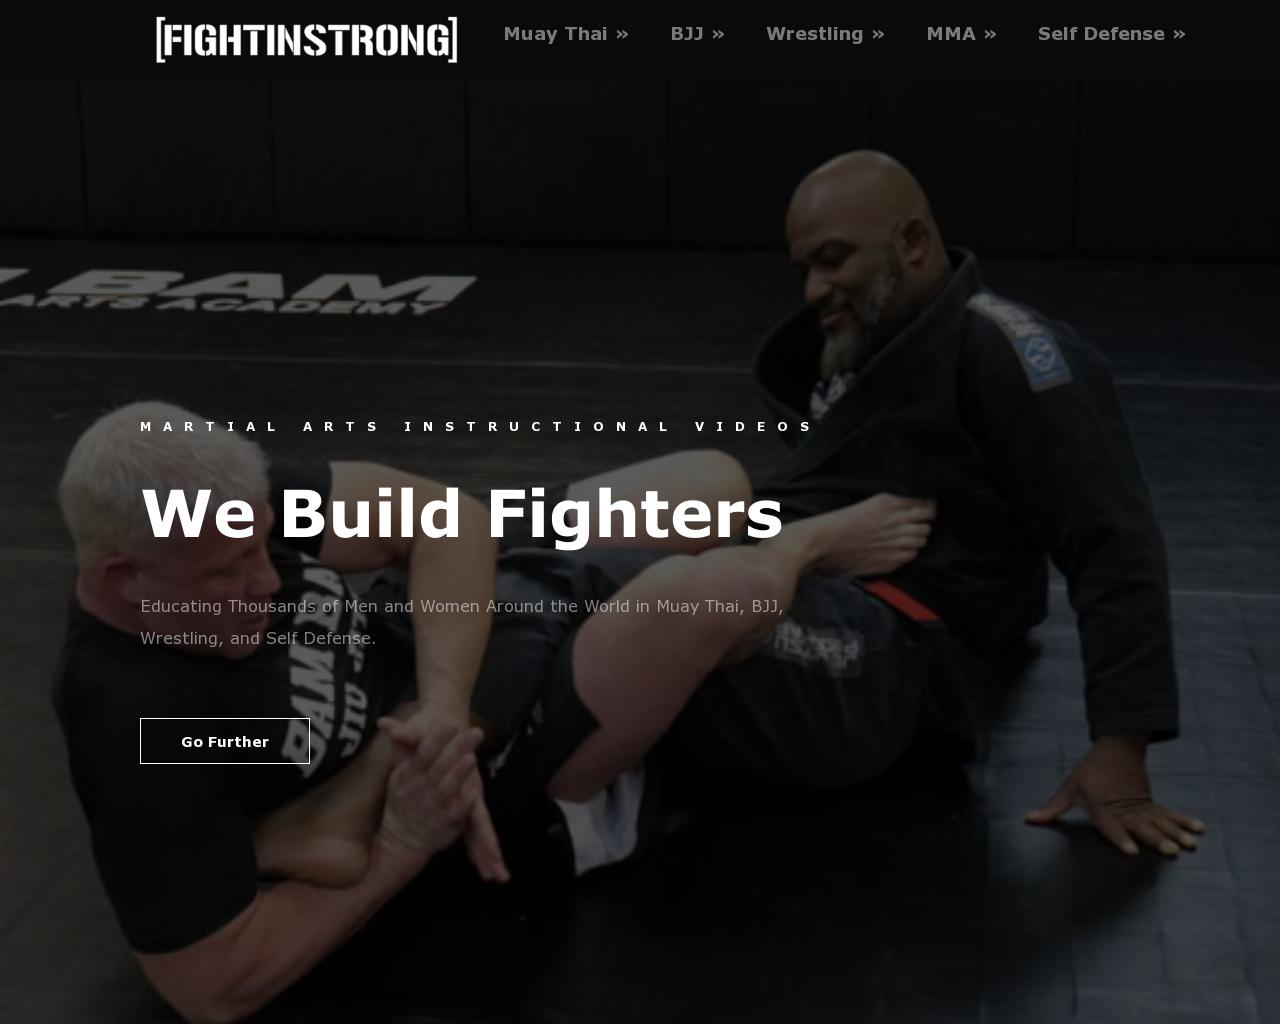 fightinstrong.com